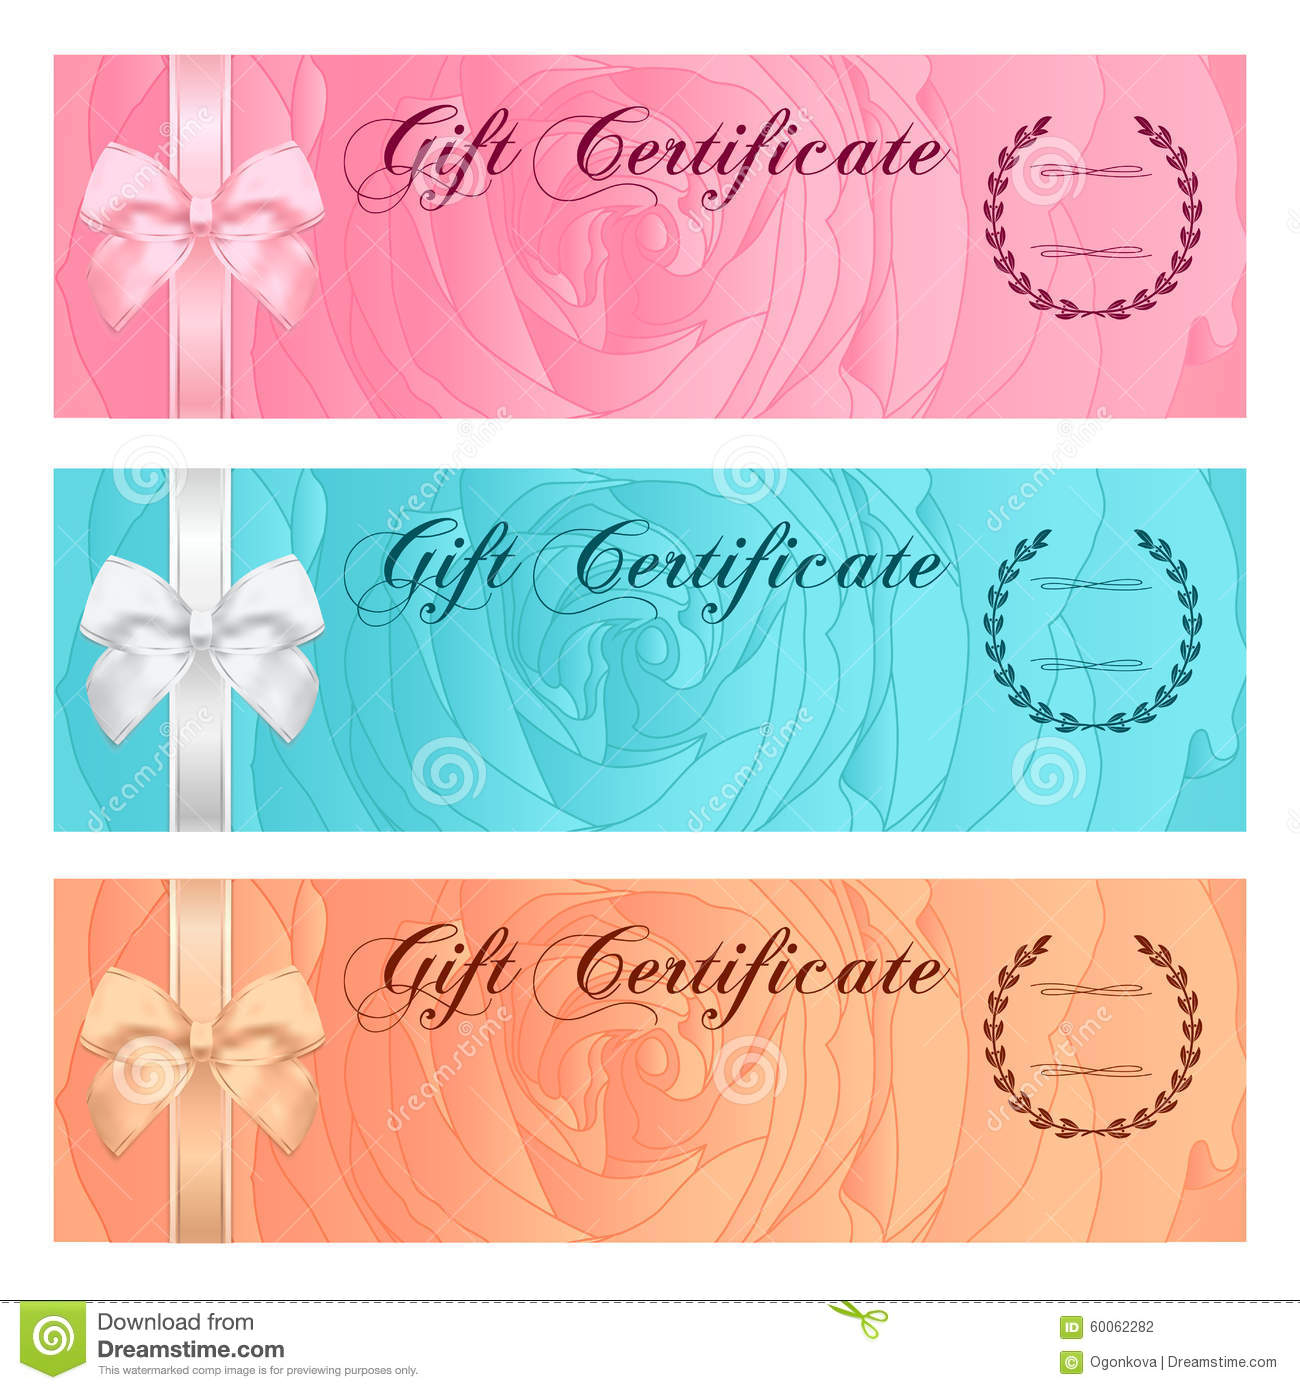 gift certificate voucher template bow pattern royalty gift certificate voucher coupon reward or gift card template floral rose pattern